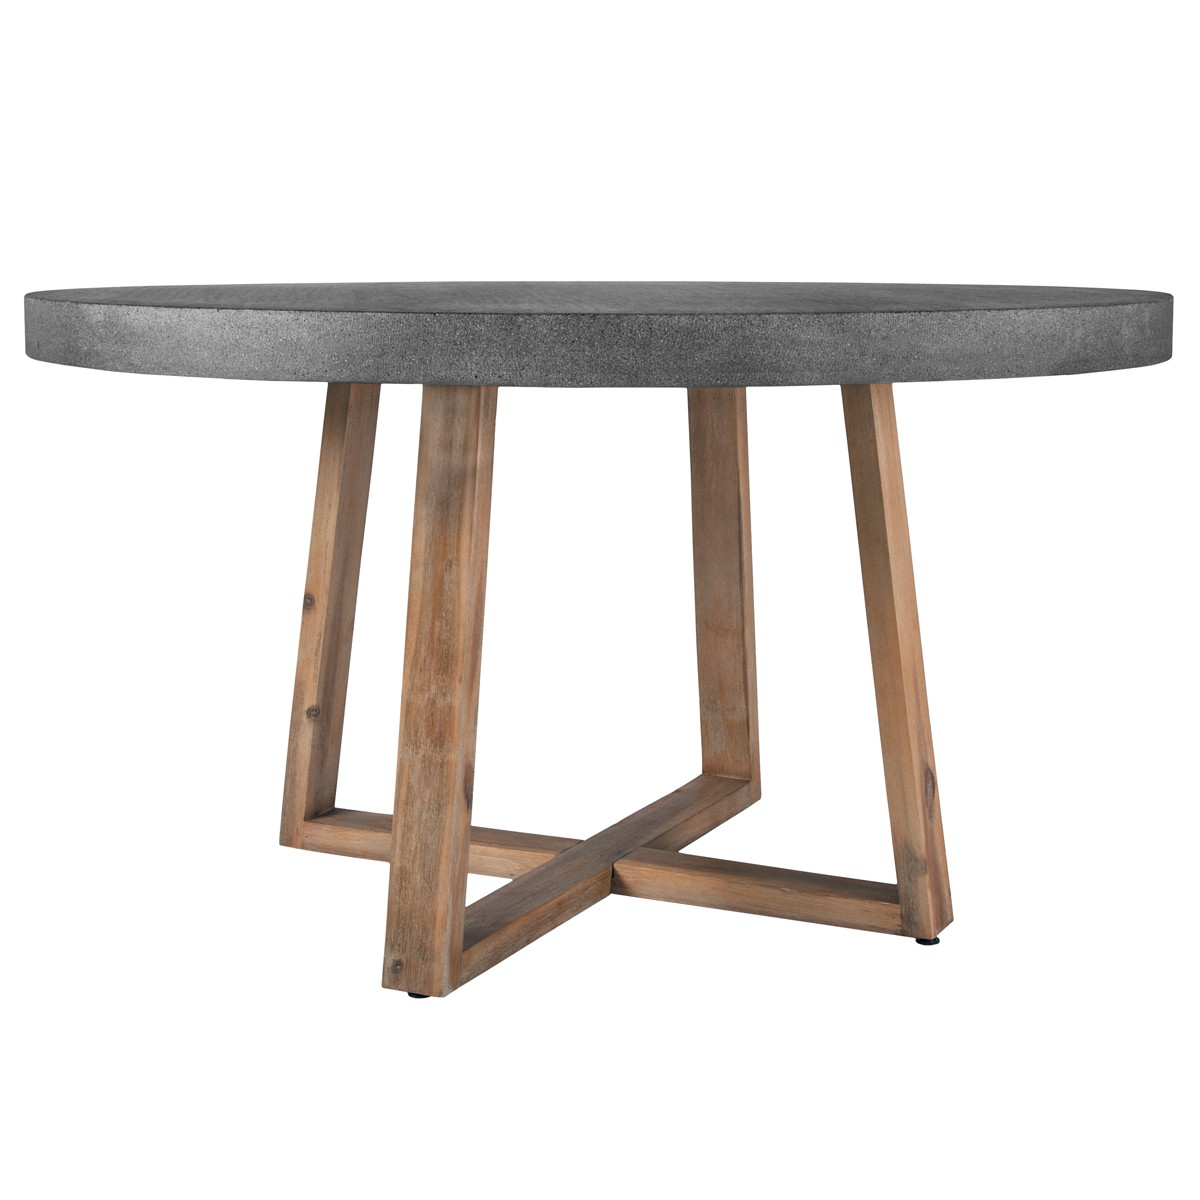 Table ronde r sine et bois 140 cm koya design for Table ronde en bois